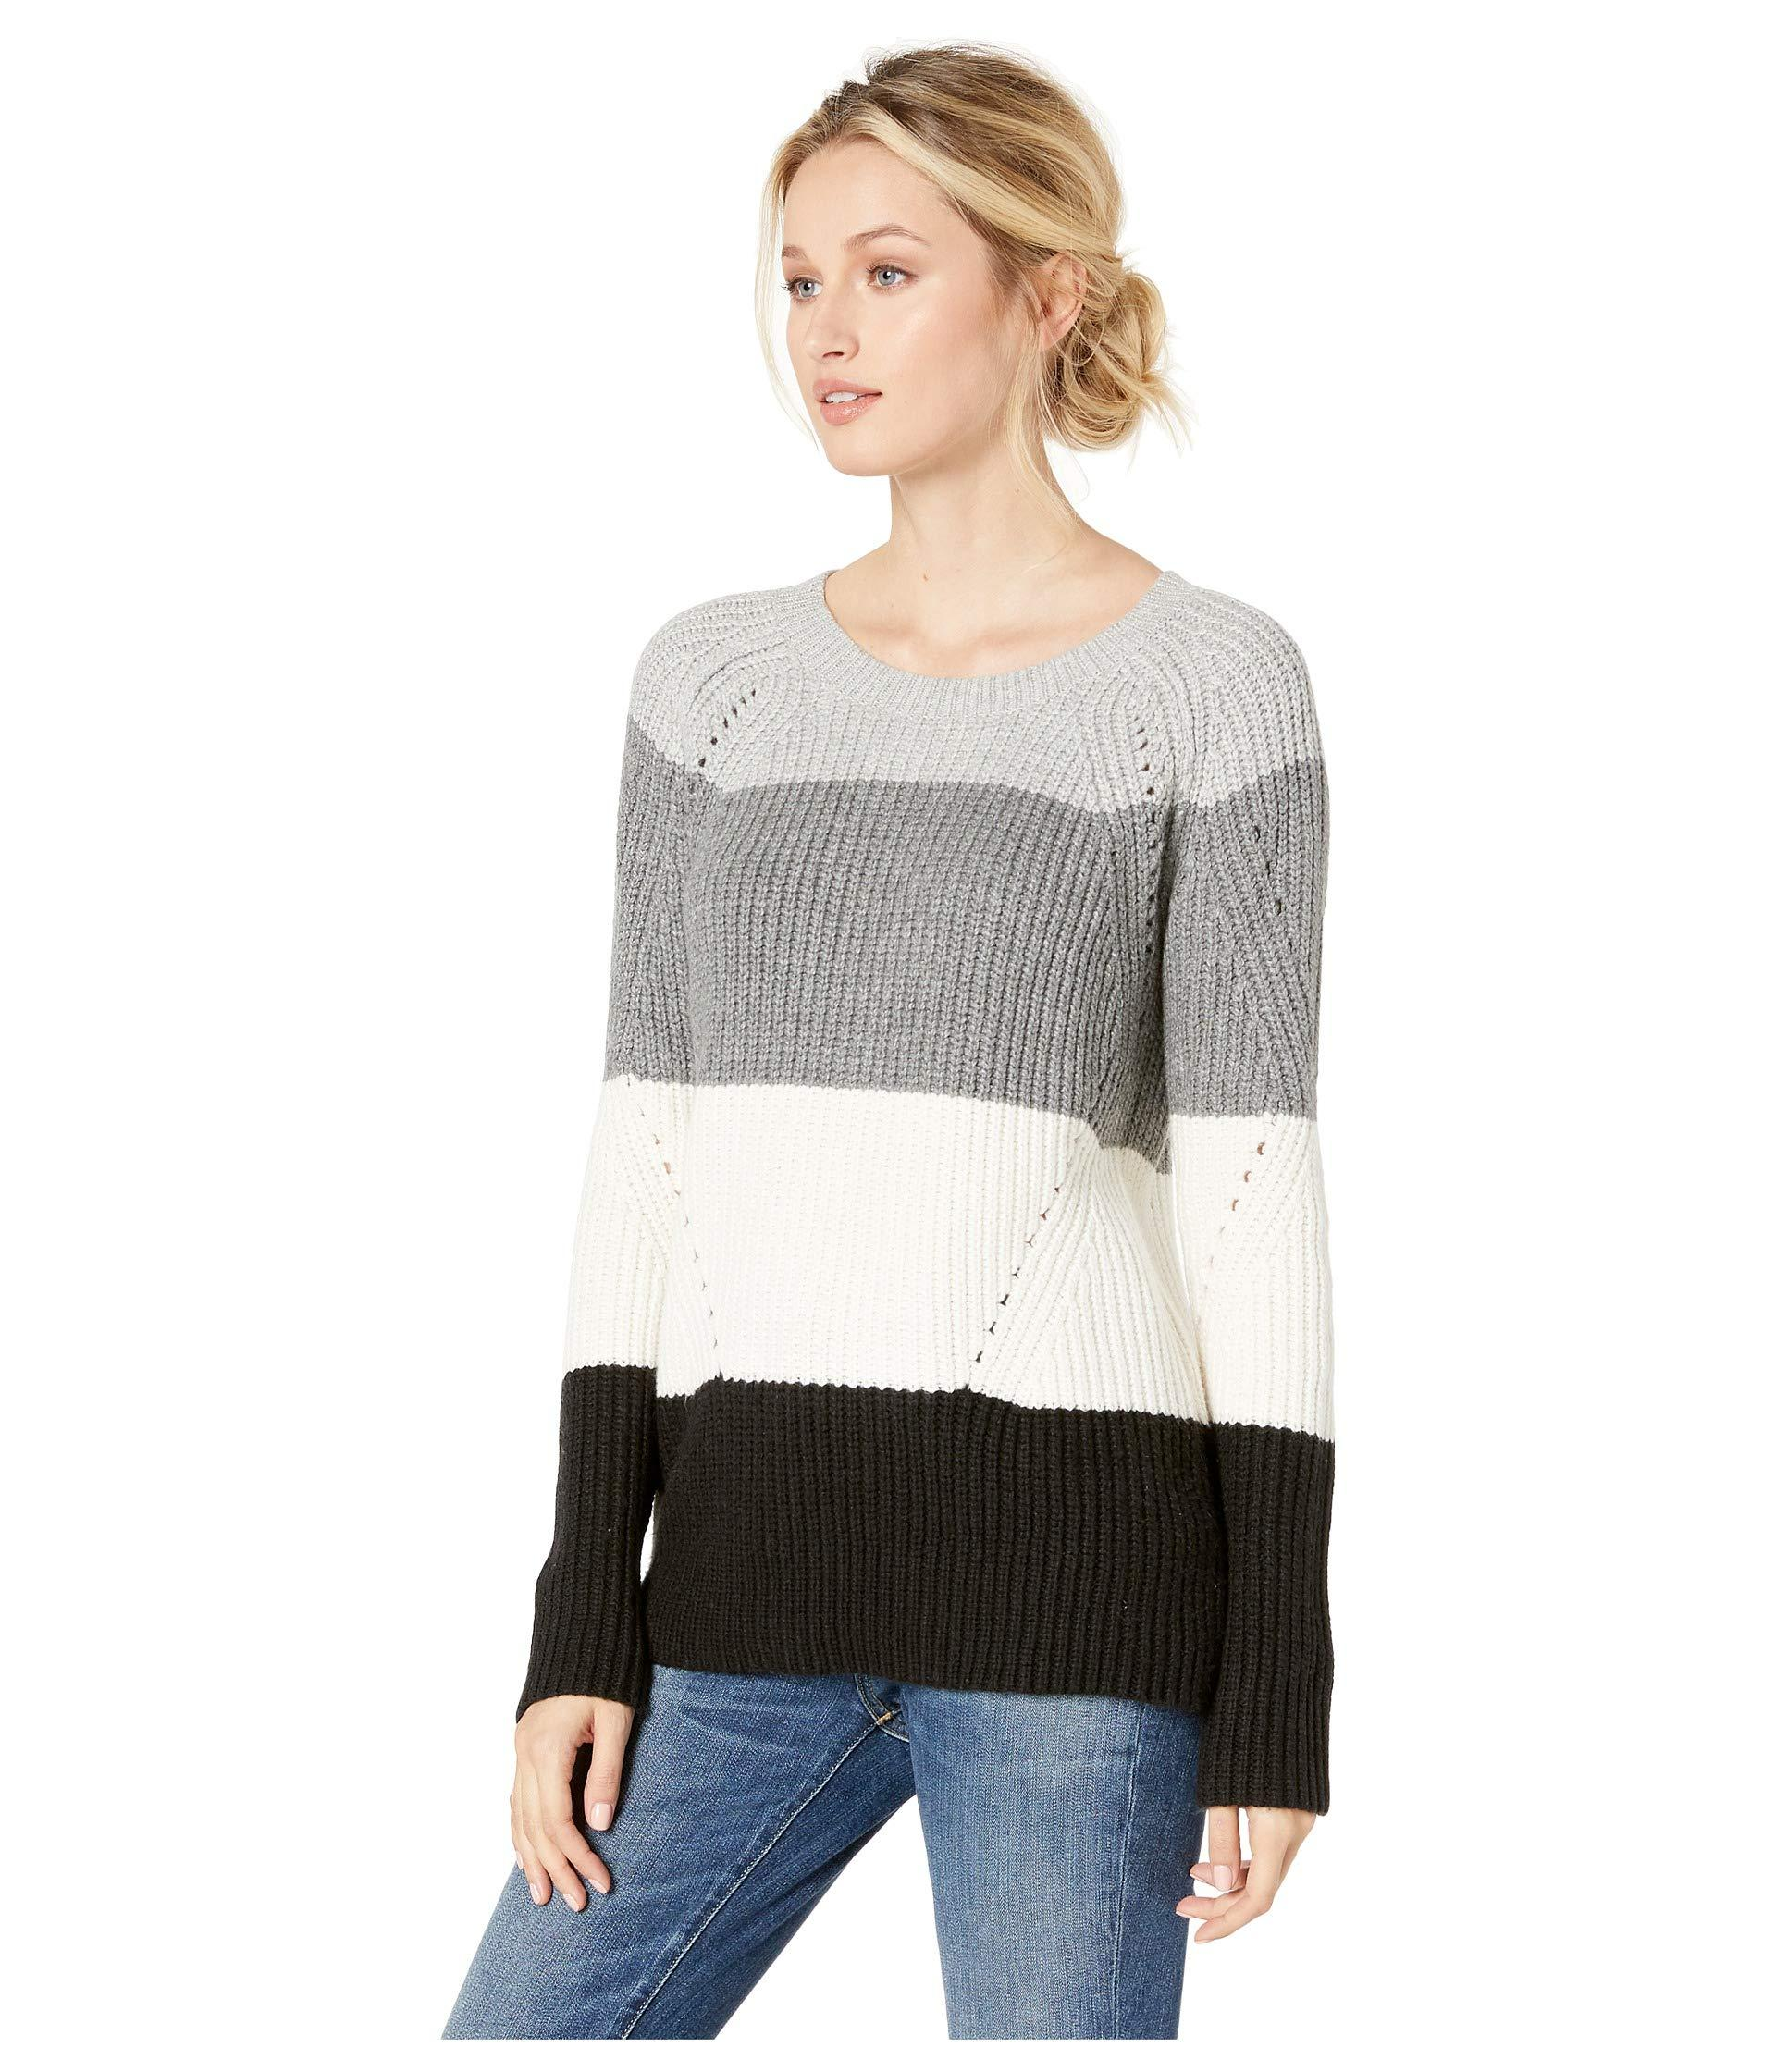 e193cd4eb1c Lyst - Lucky Brand Crew Neck Pointelle Sweater in Gray - Save 56%